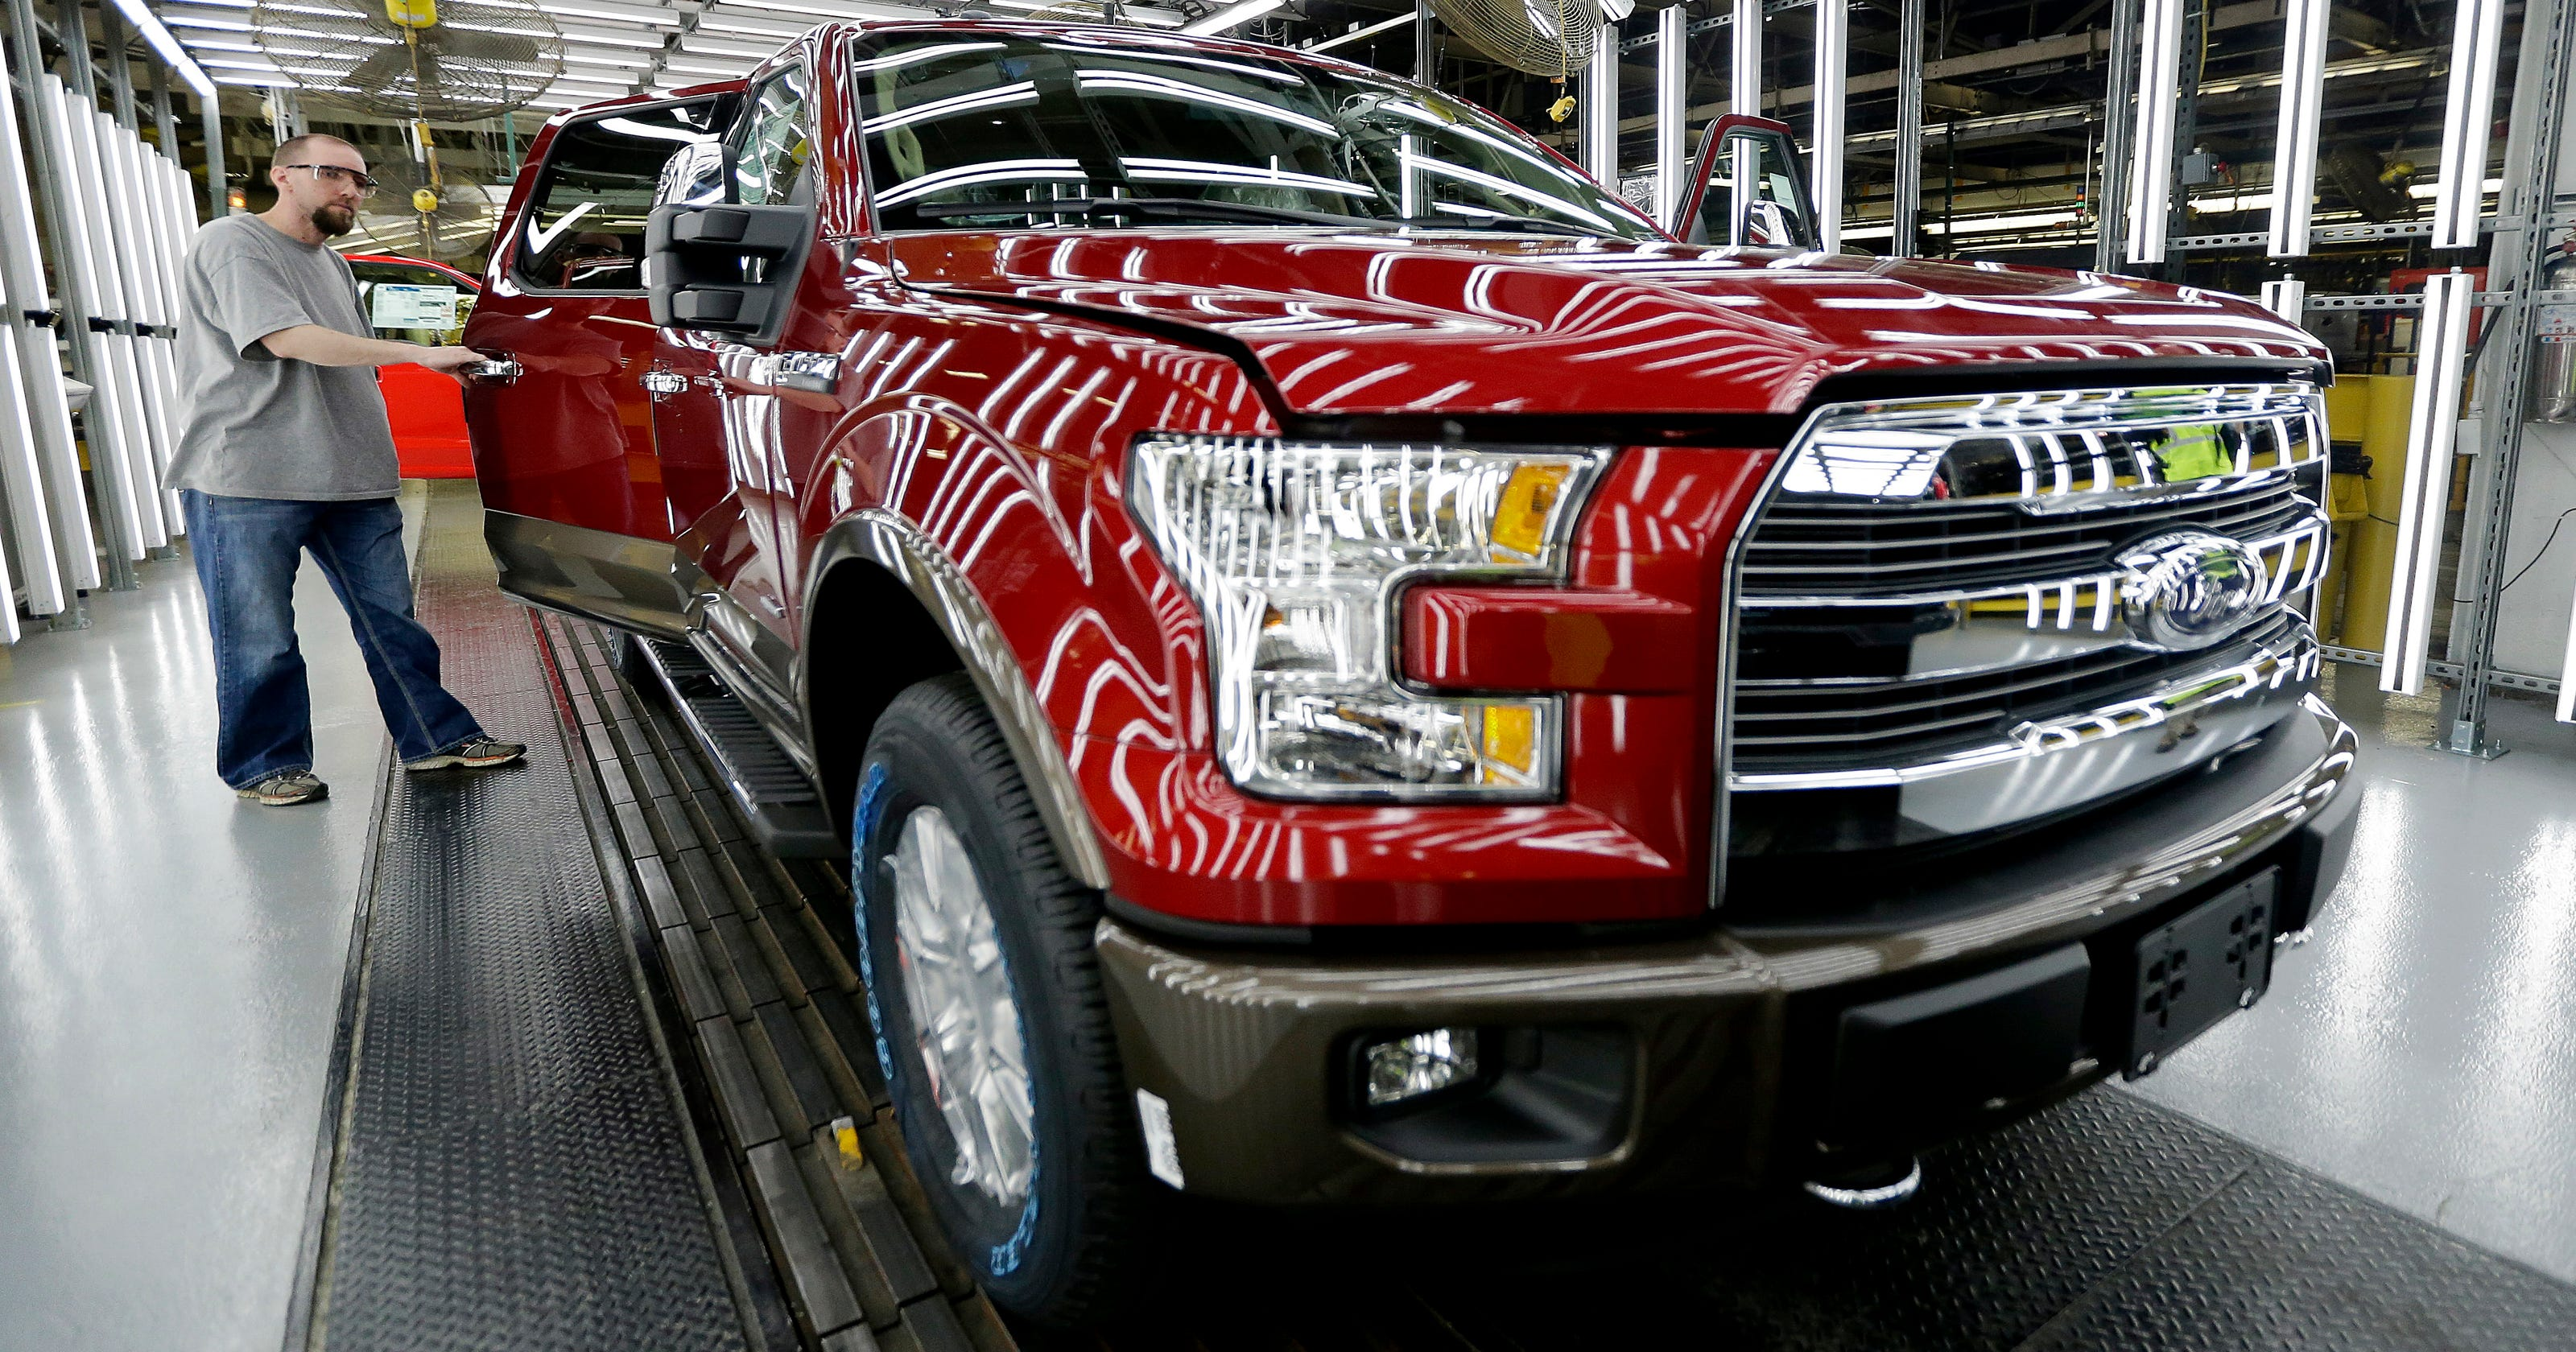 Ford confirms it will stop all f 150 production after supplier fire